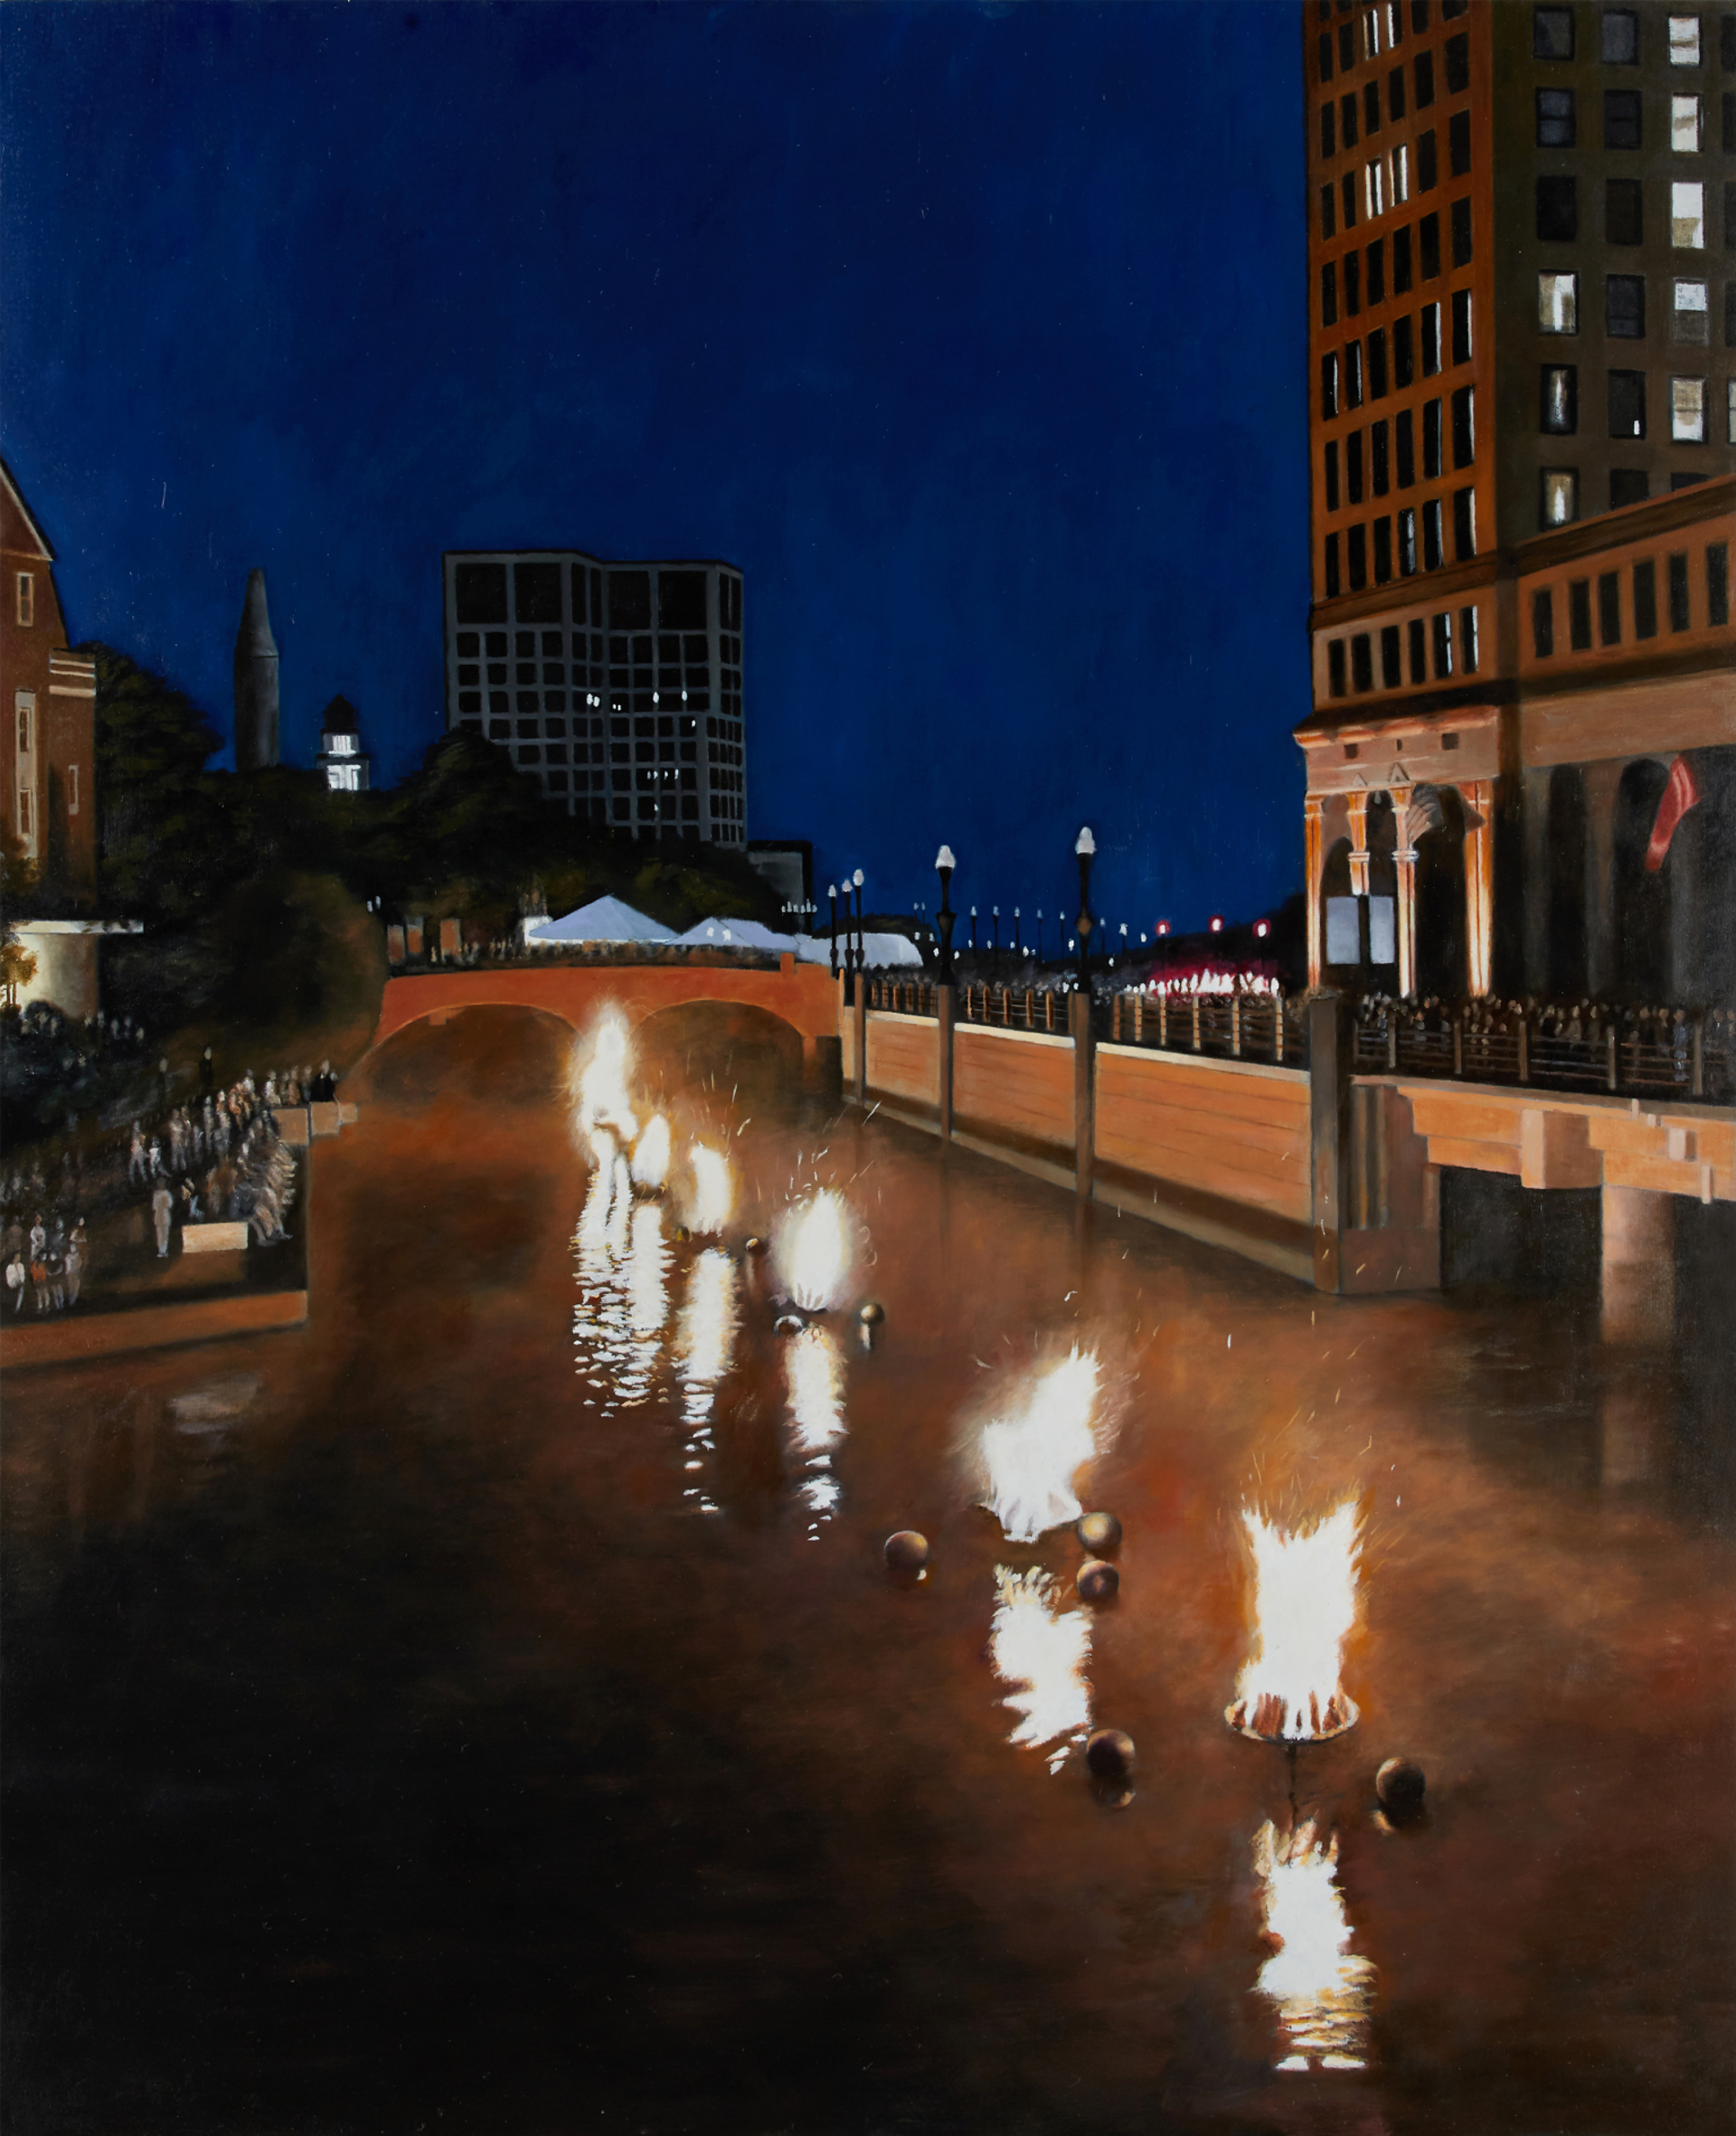 Fire on the Water by Nick Patten